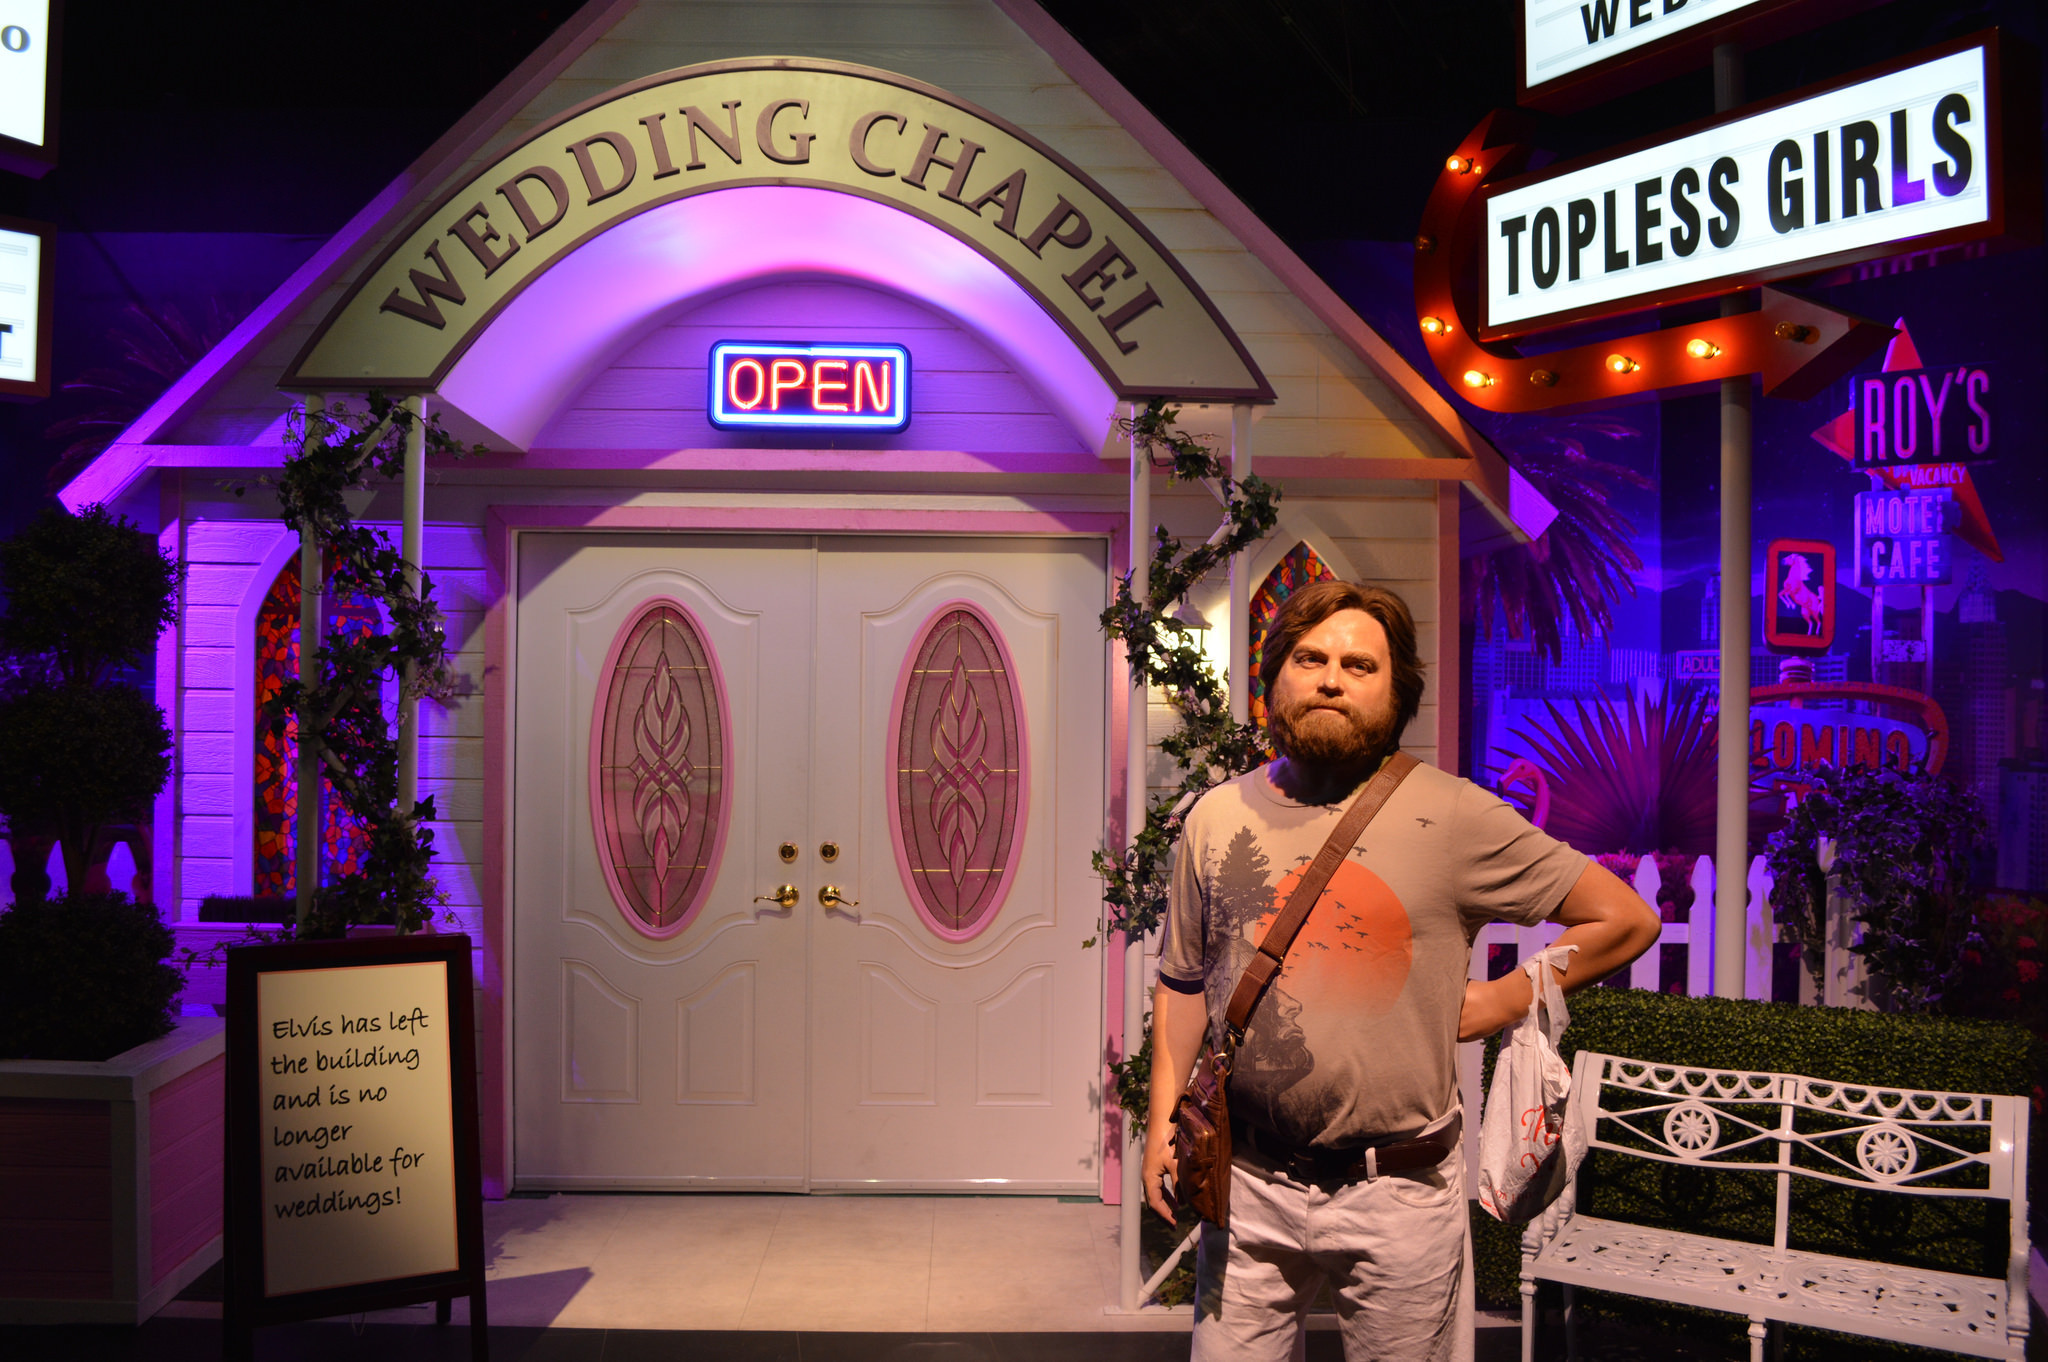 la trb las vegas hangover chapel htmlstory vegas wedding chapels do this Labor Day weekend that you ve never been able to do before Get married in the brand new Hangover wedding chapel at Madame Tussauds Las Vegas